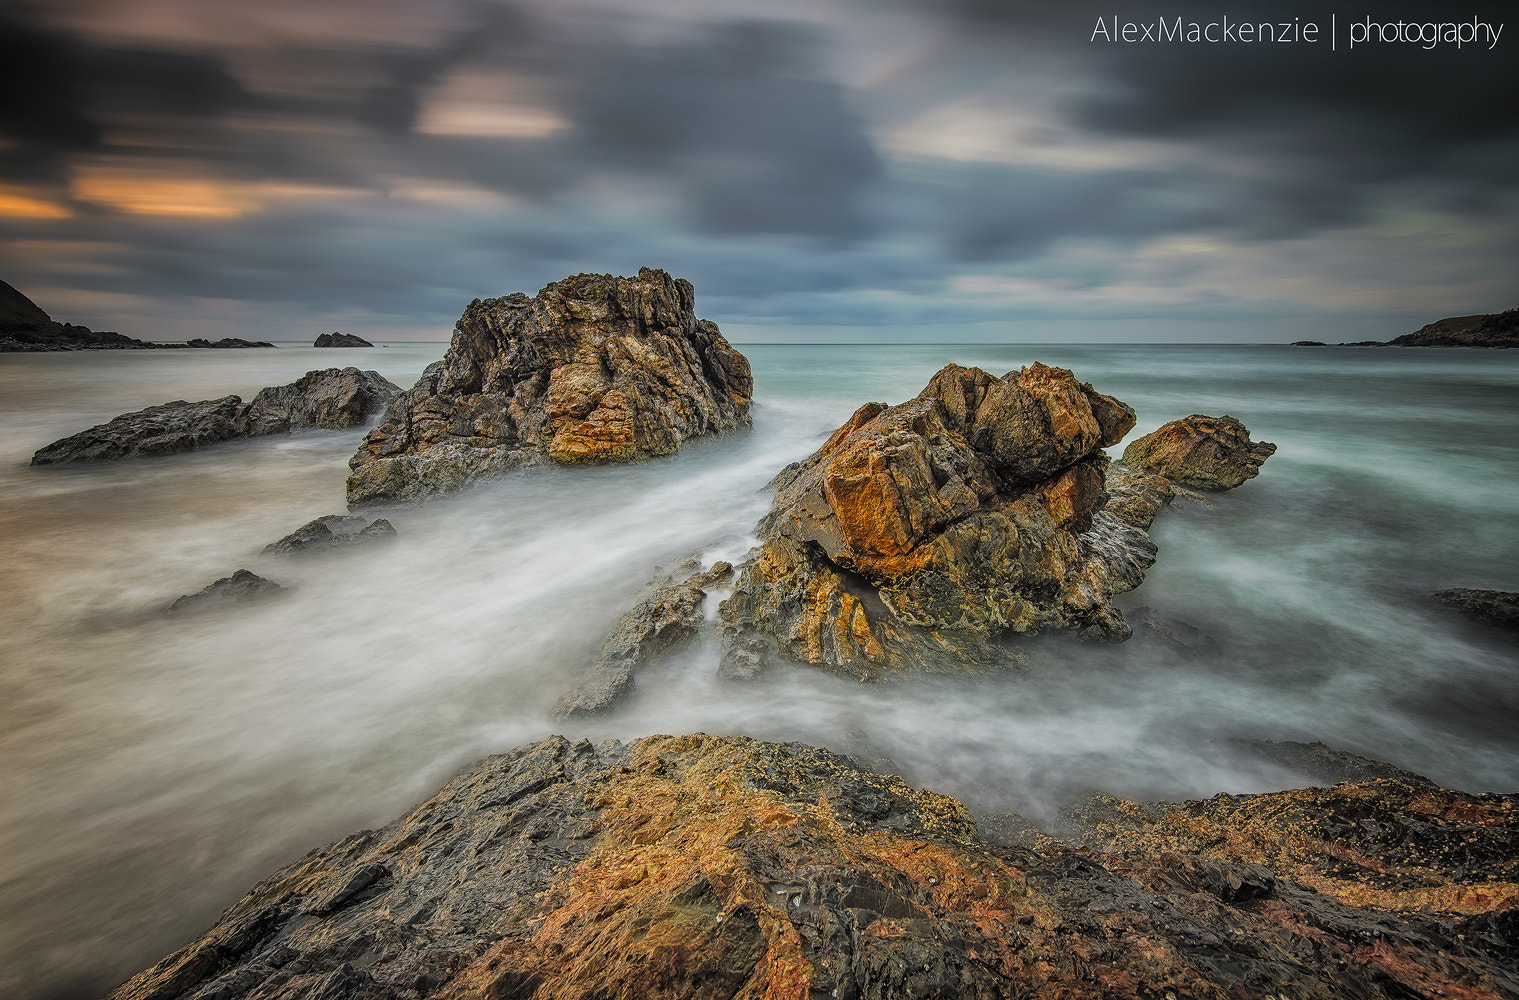 Photograph Rise and fall by Alex Mackenzie on 500px